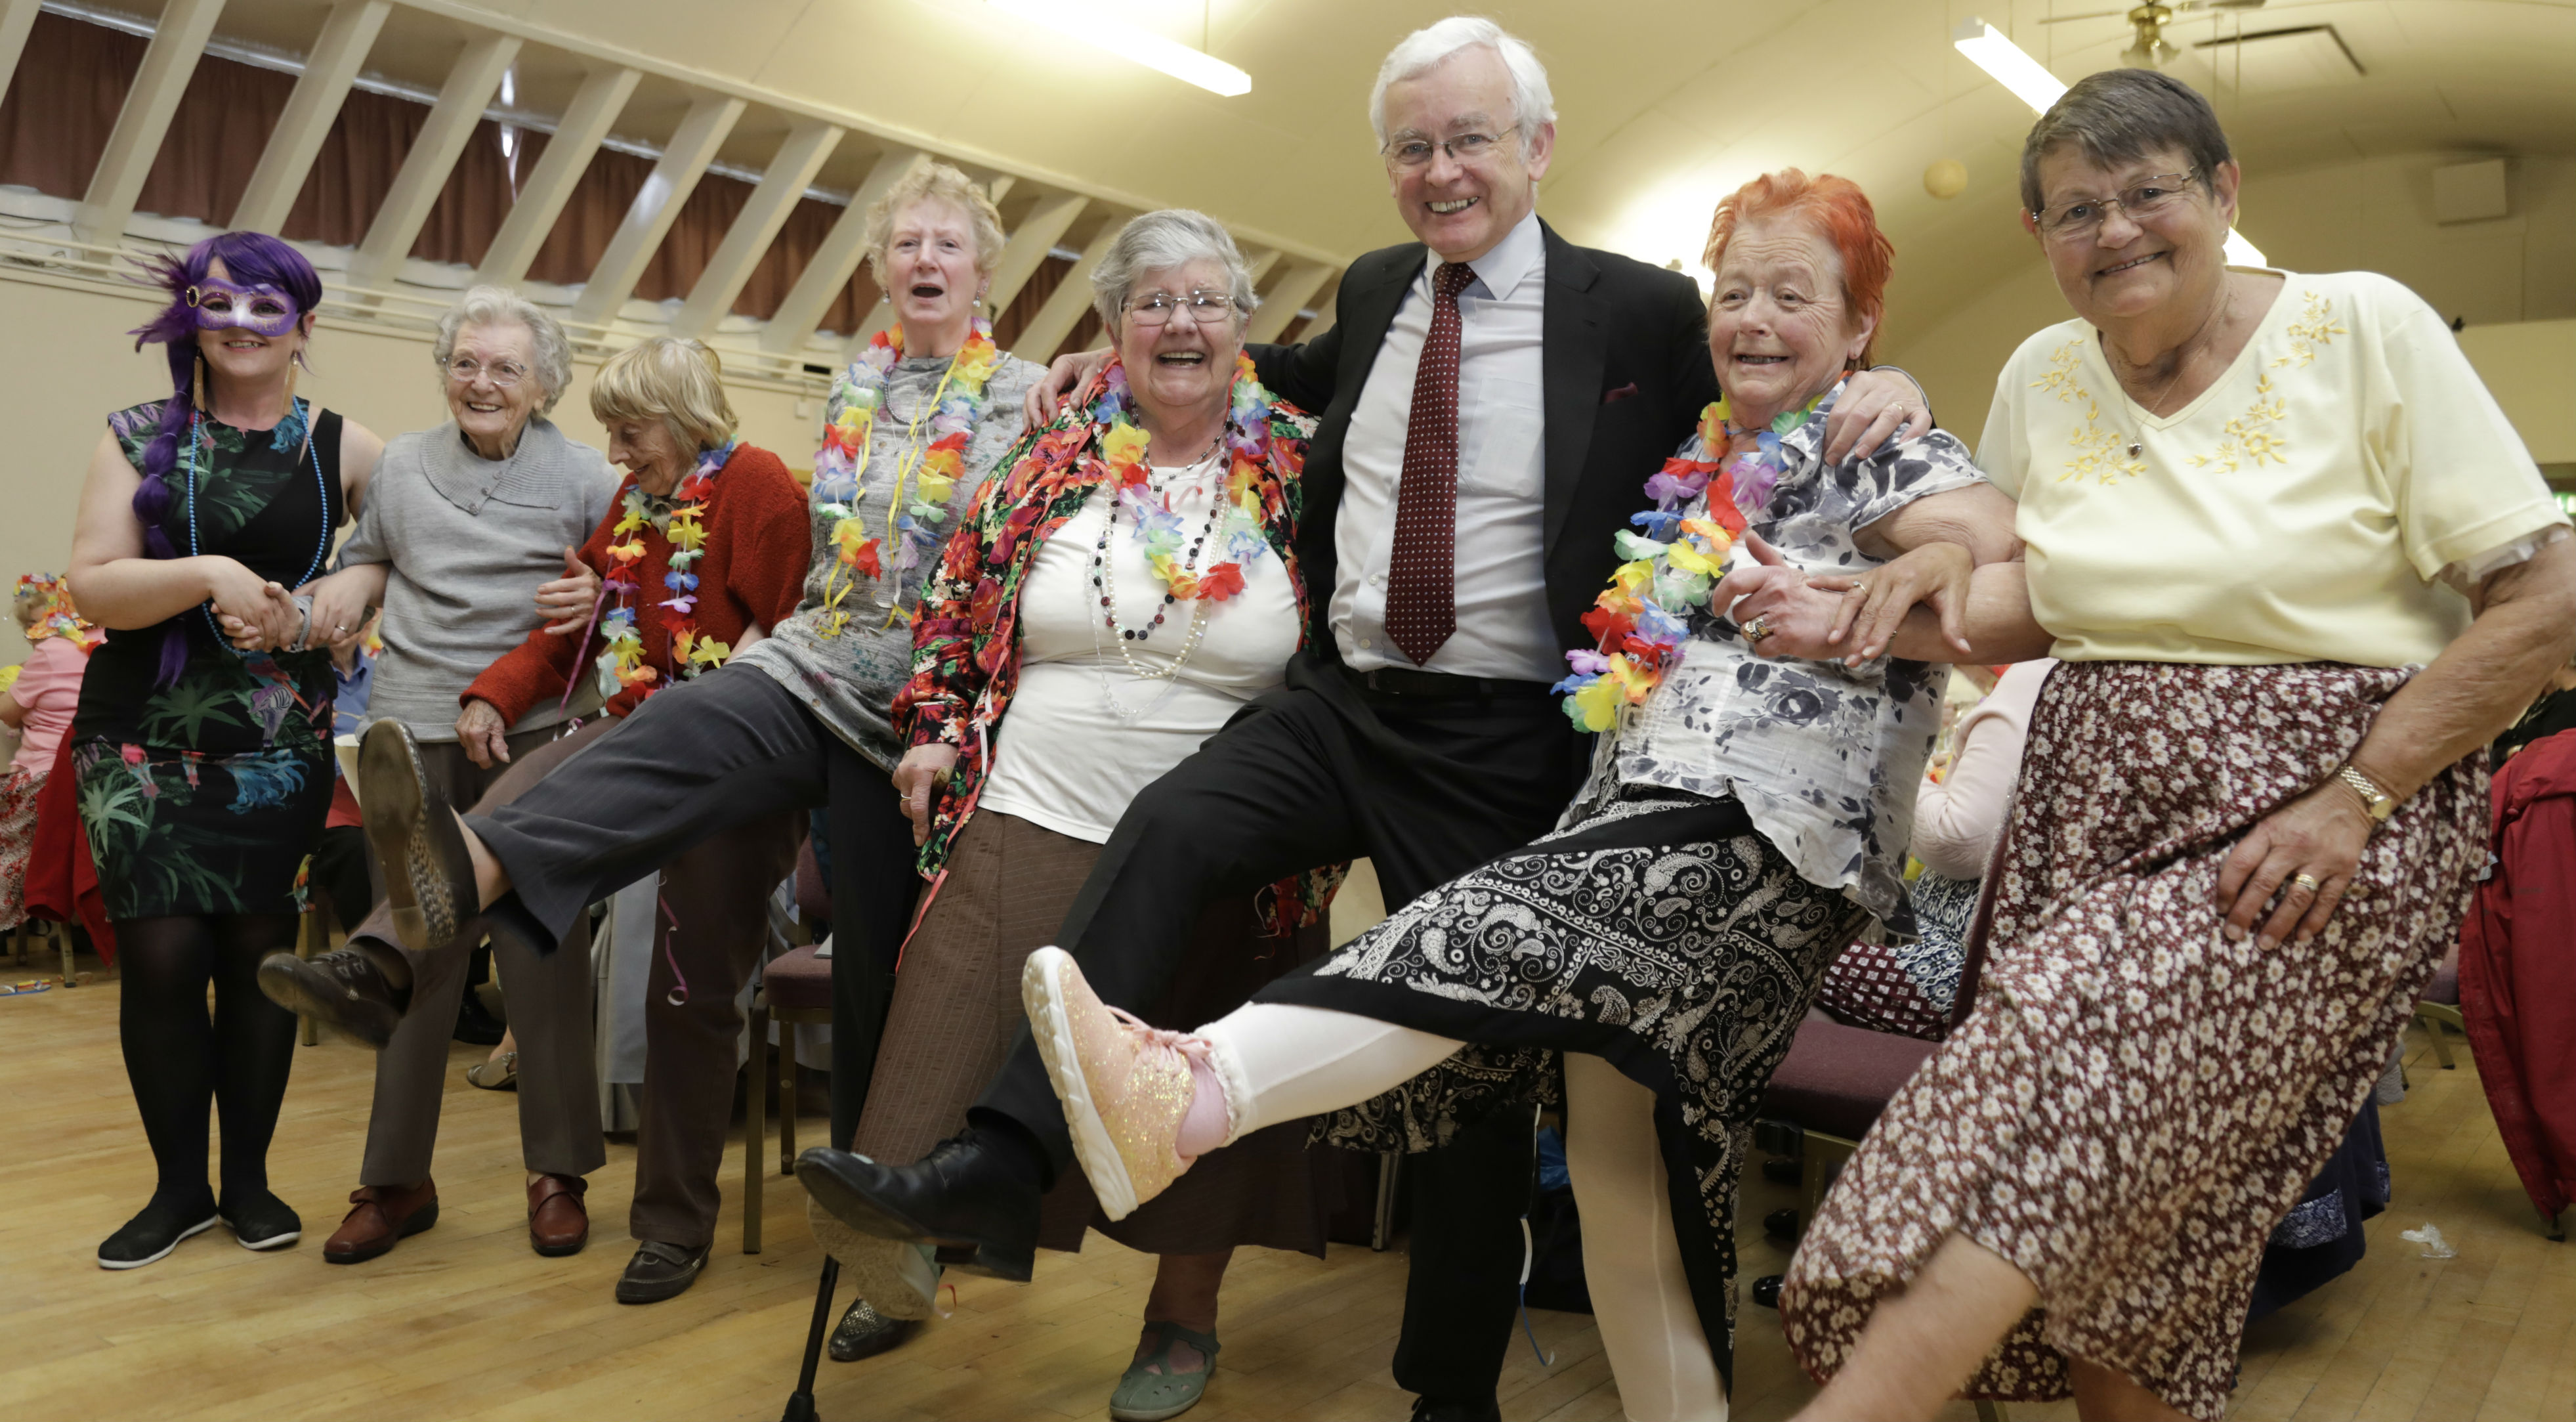 Martin Vickers MP shows his support for a new resident-led project funded by People's Health Trust that supports older people living in and around Cleethorpes.